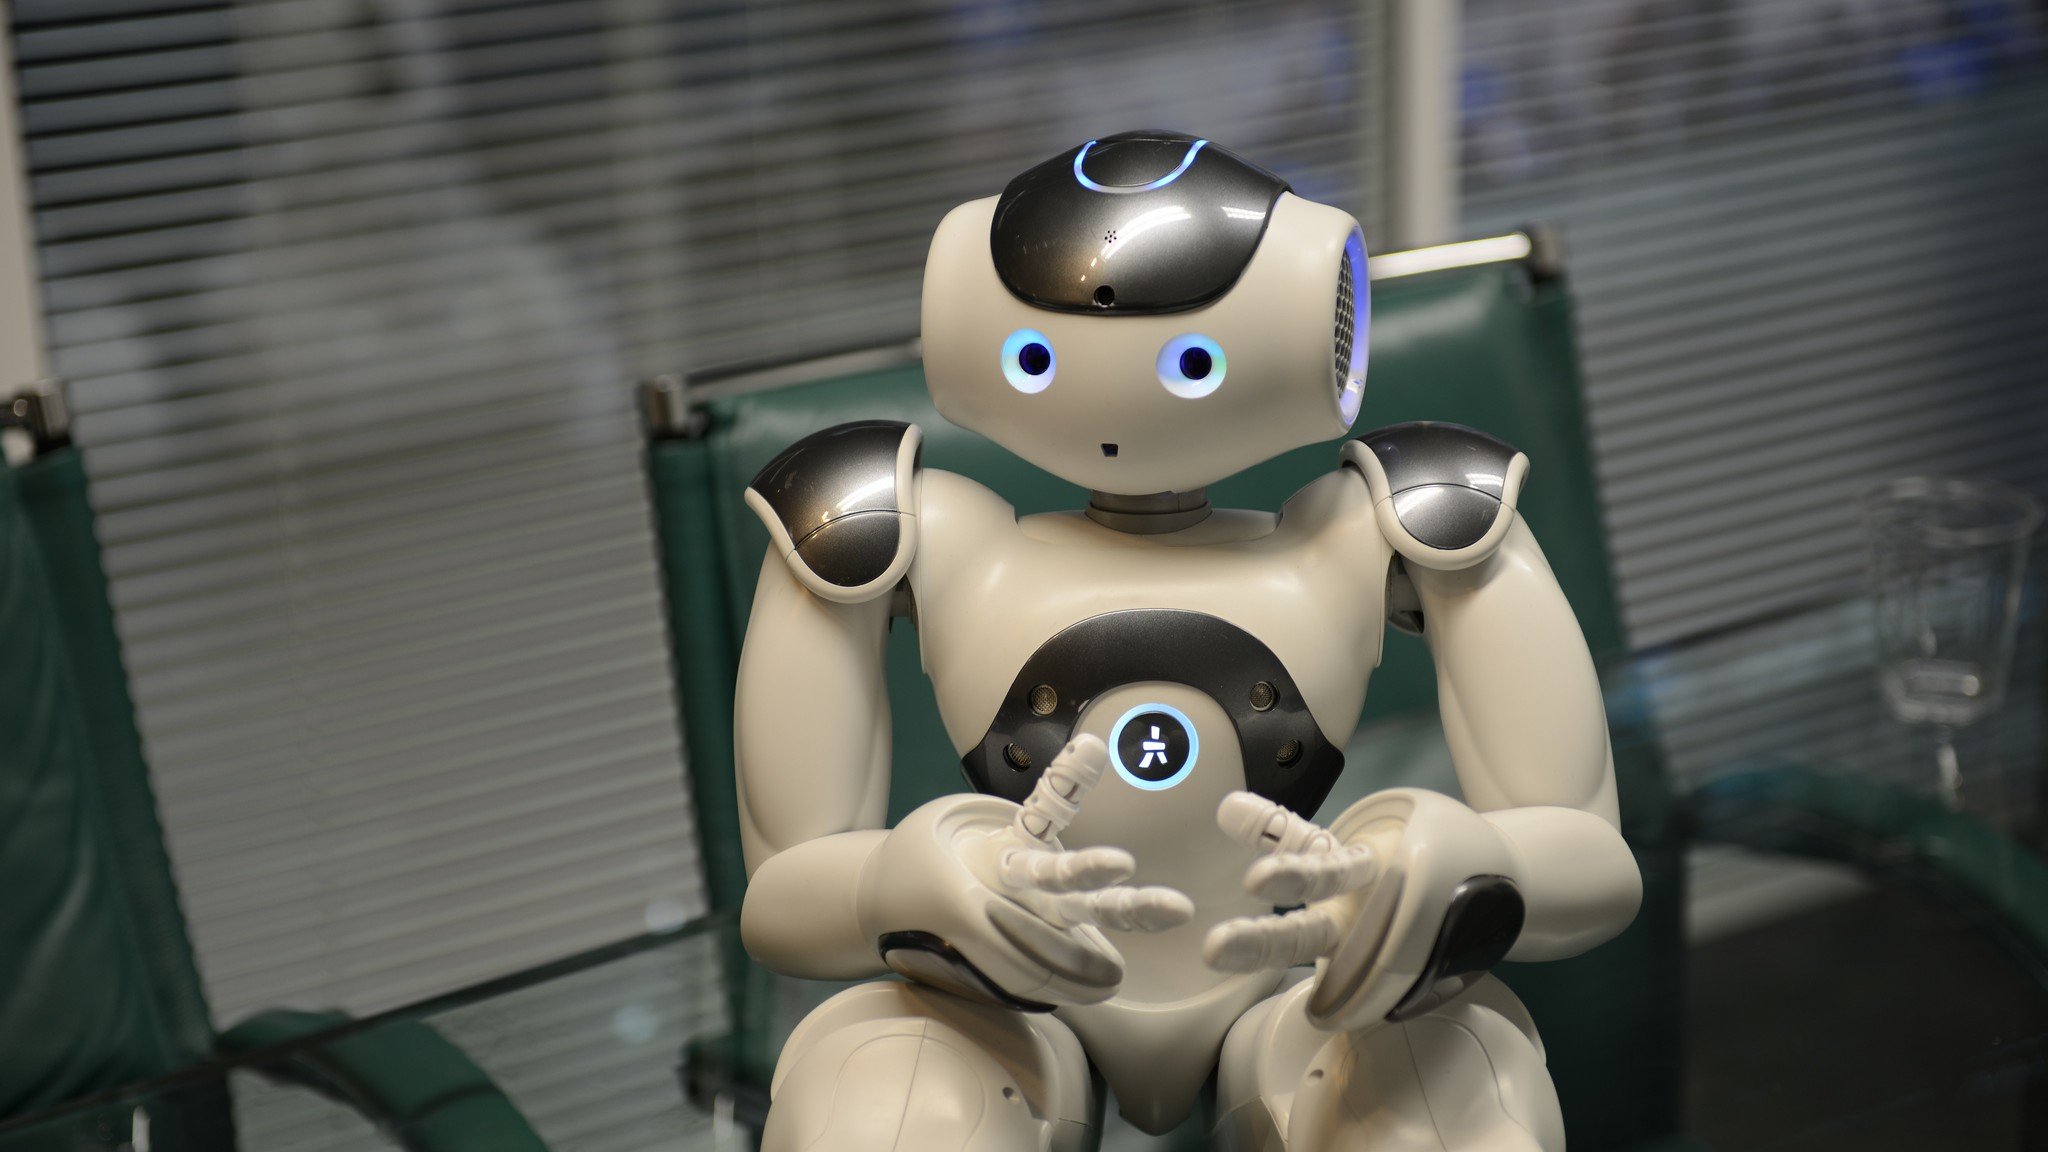 Why Are Humans Afraid to Touch Robot Butts?